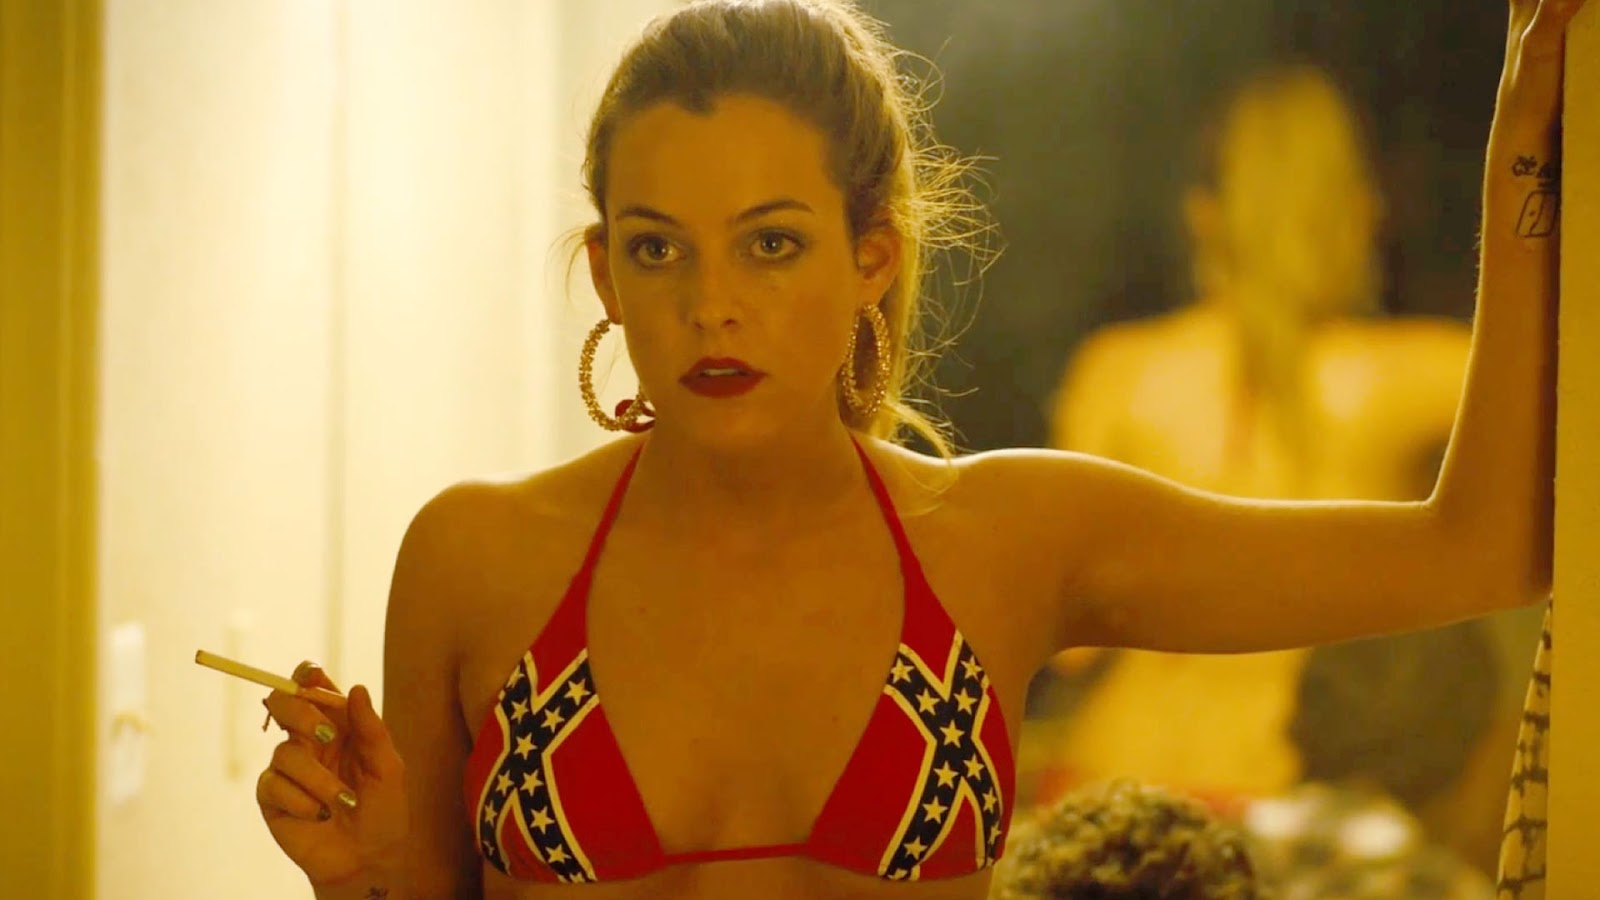 Riley Keough damm hot picture